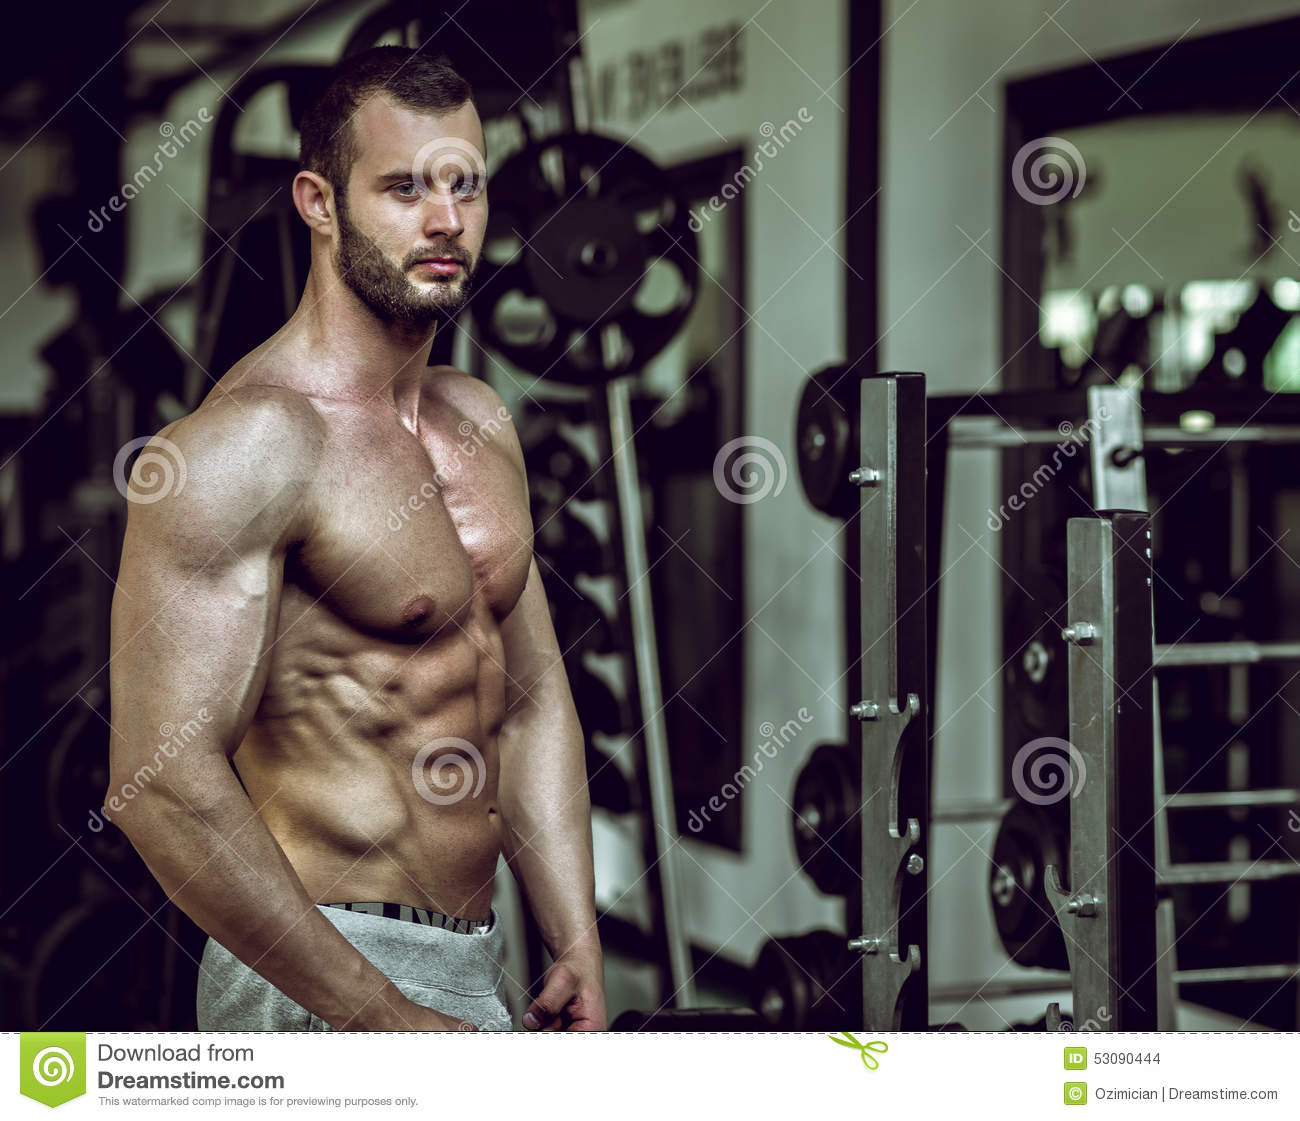 Man showing abs in gym